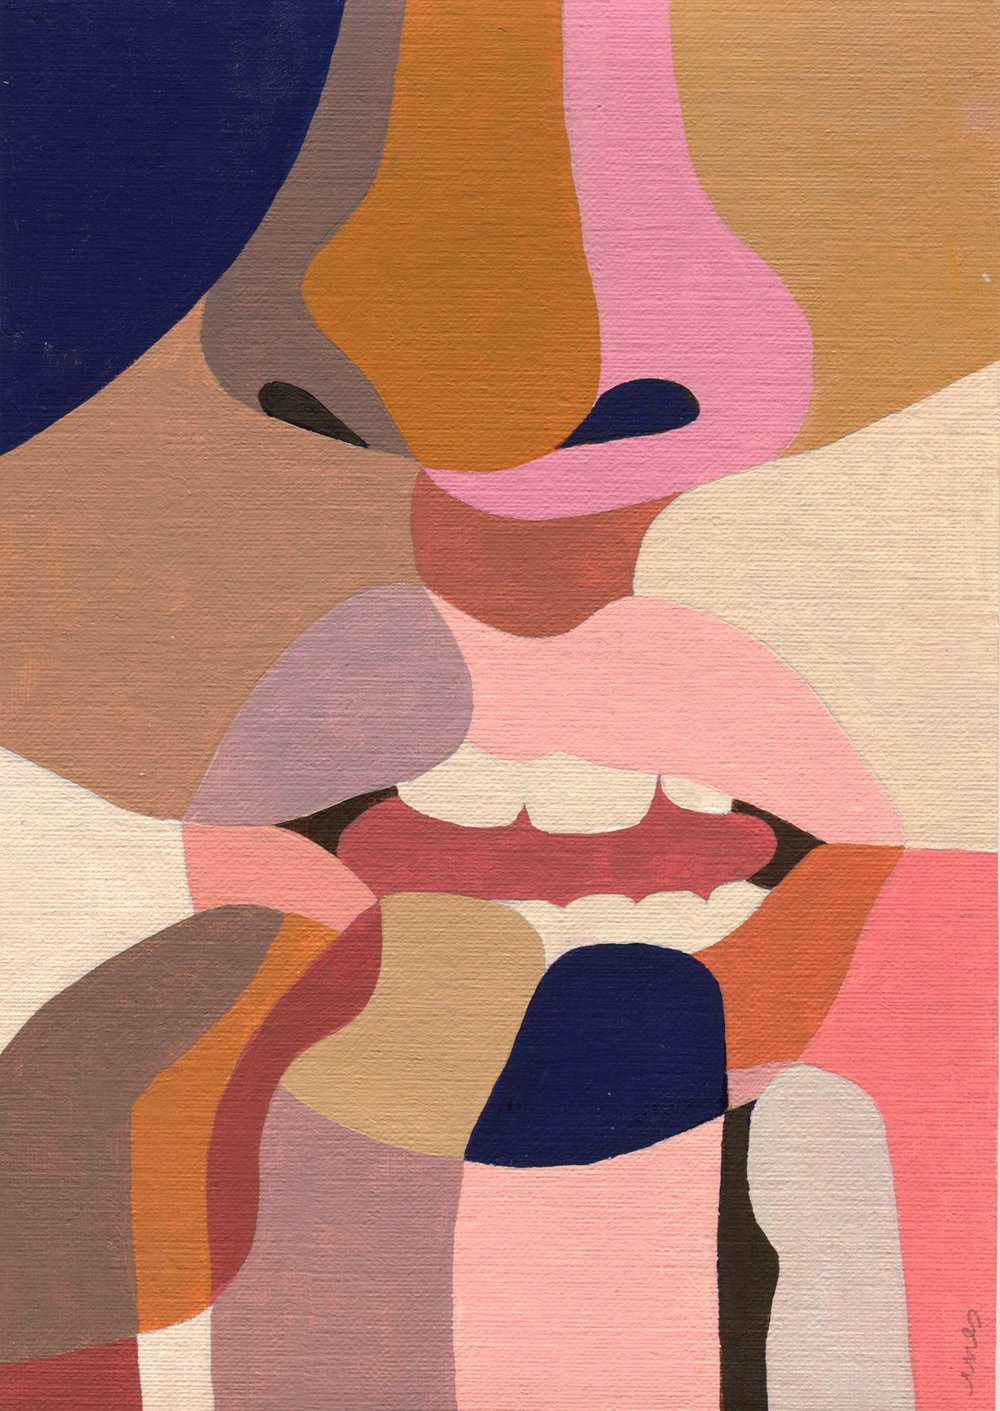 A painting of an up close person's face who is biting their nails.